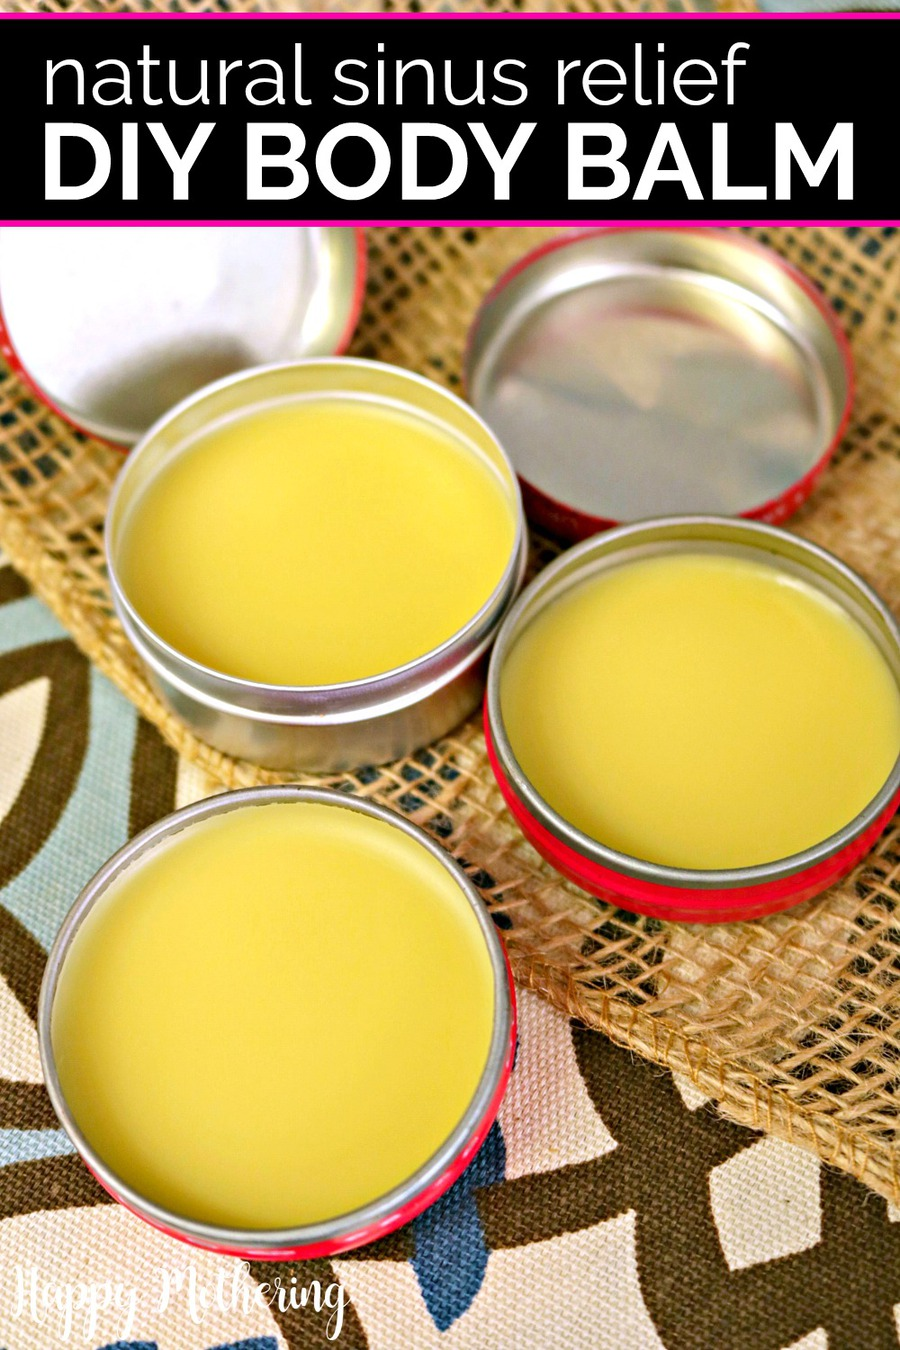 DIY sinus relief body balm on a tablecloth in tins.